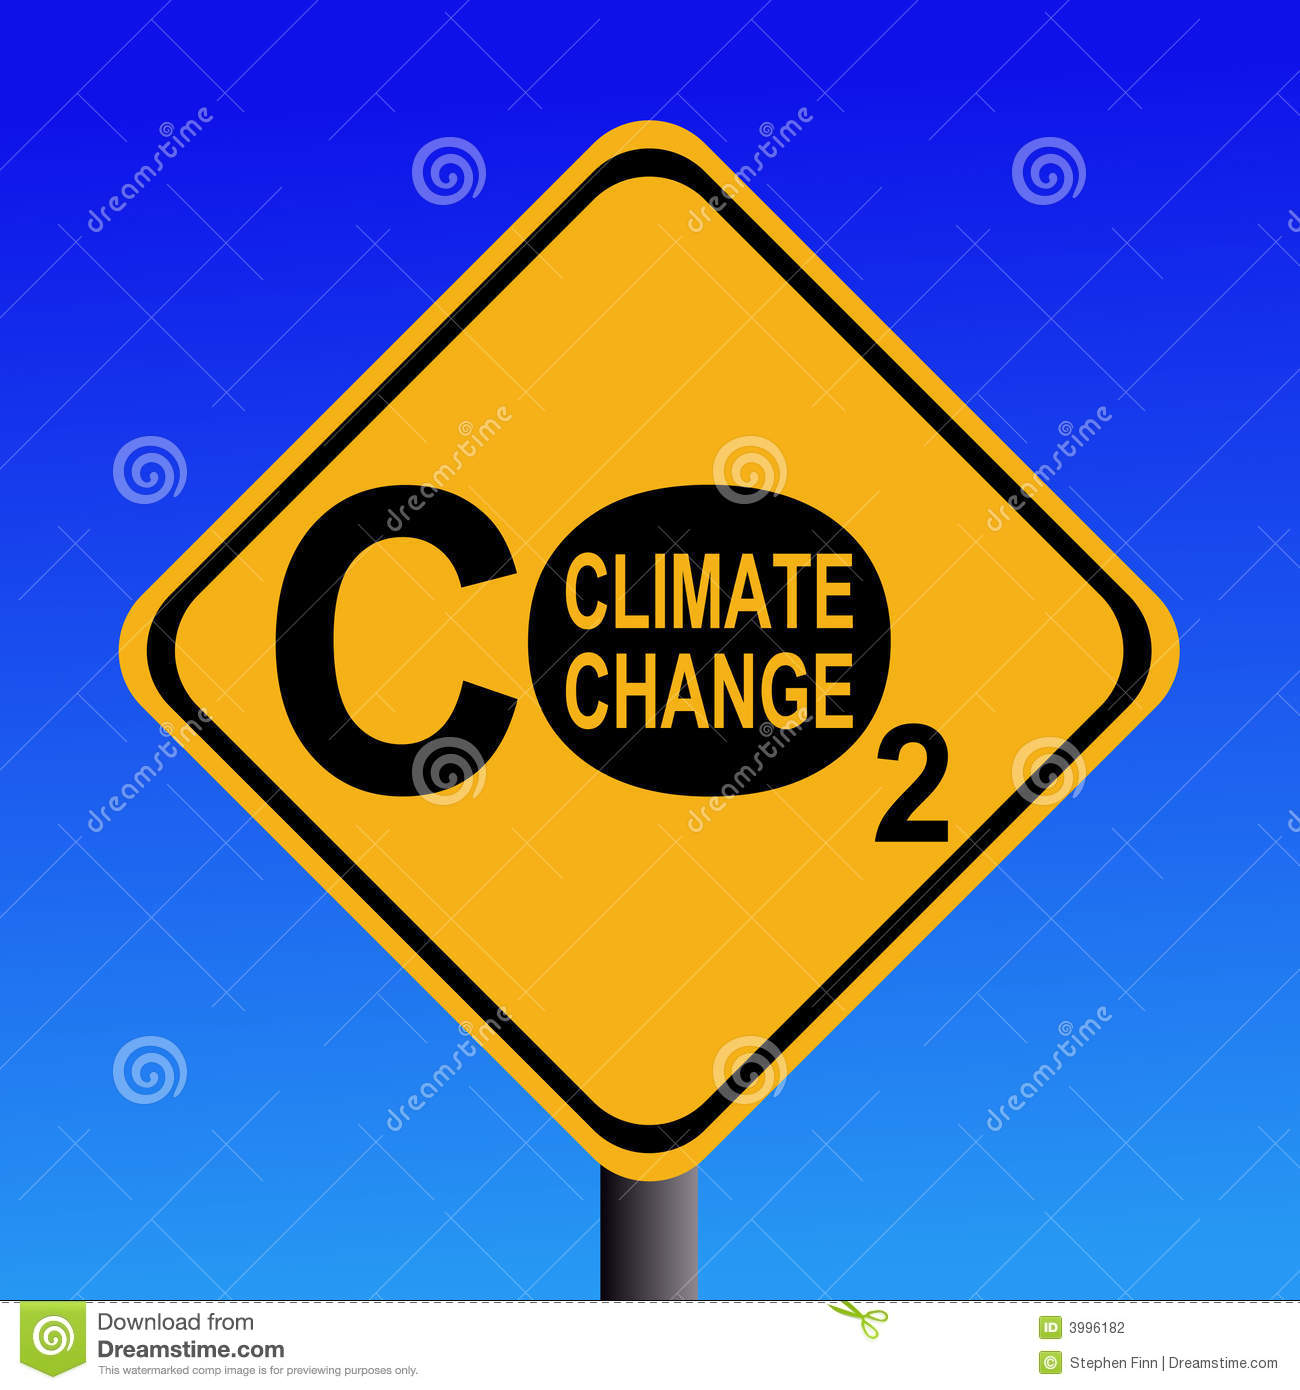 Climate Change Clipart 20 Free Cliparts Download Images